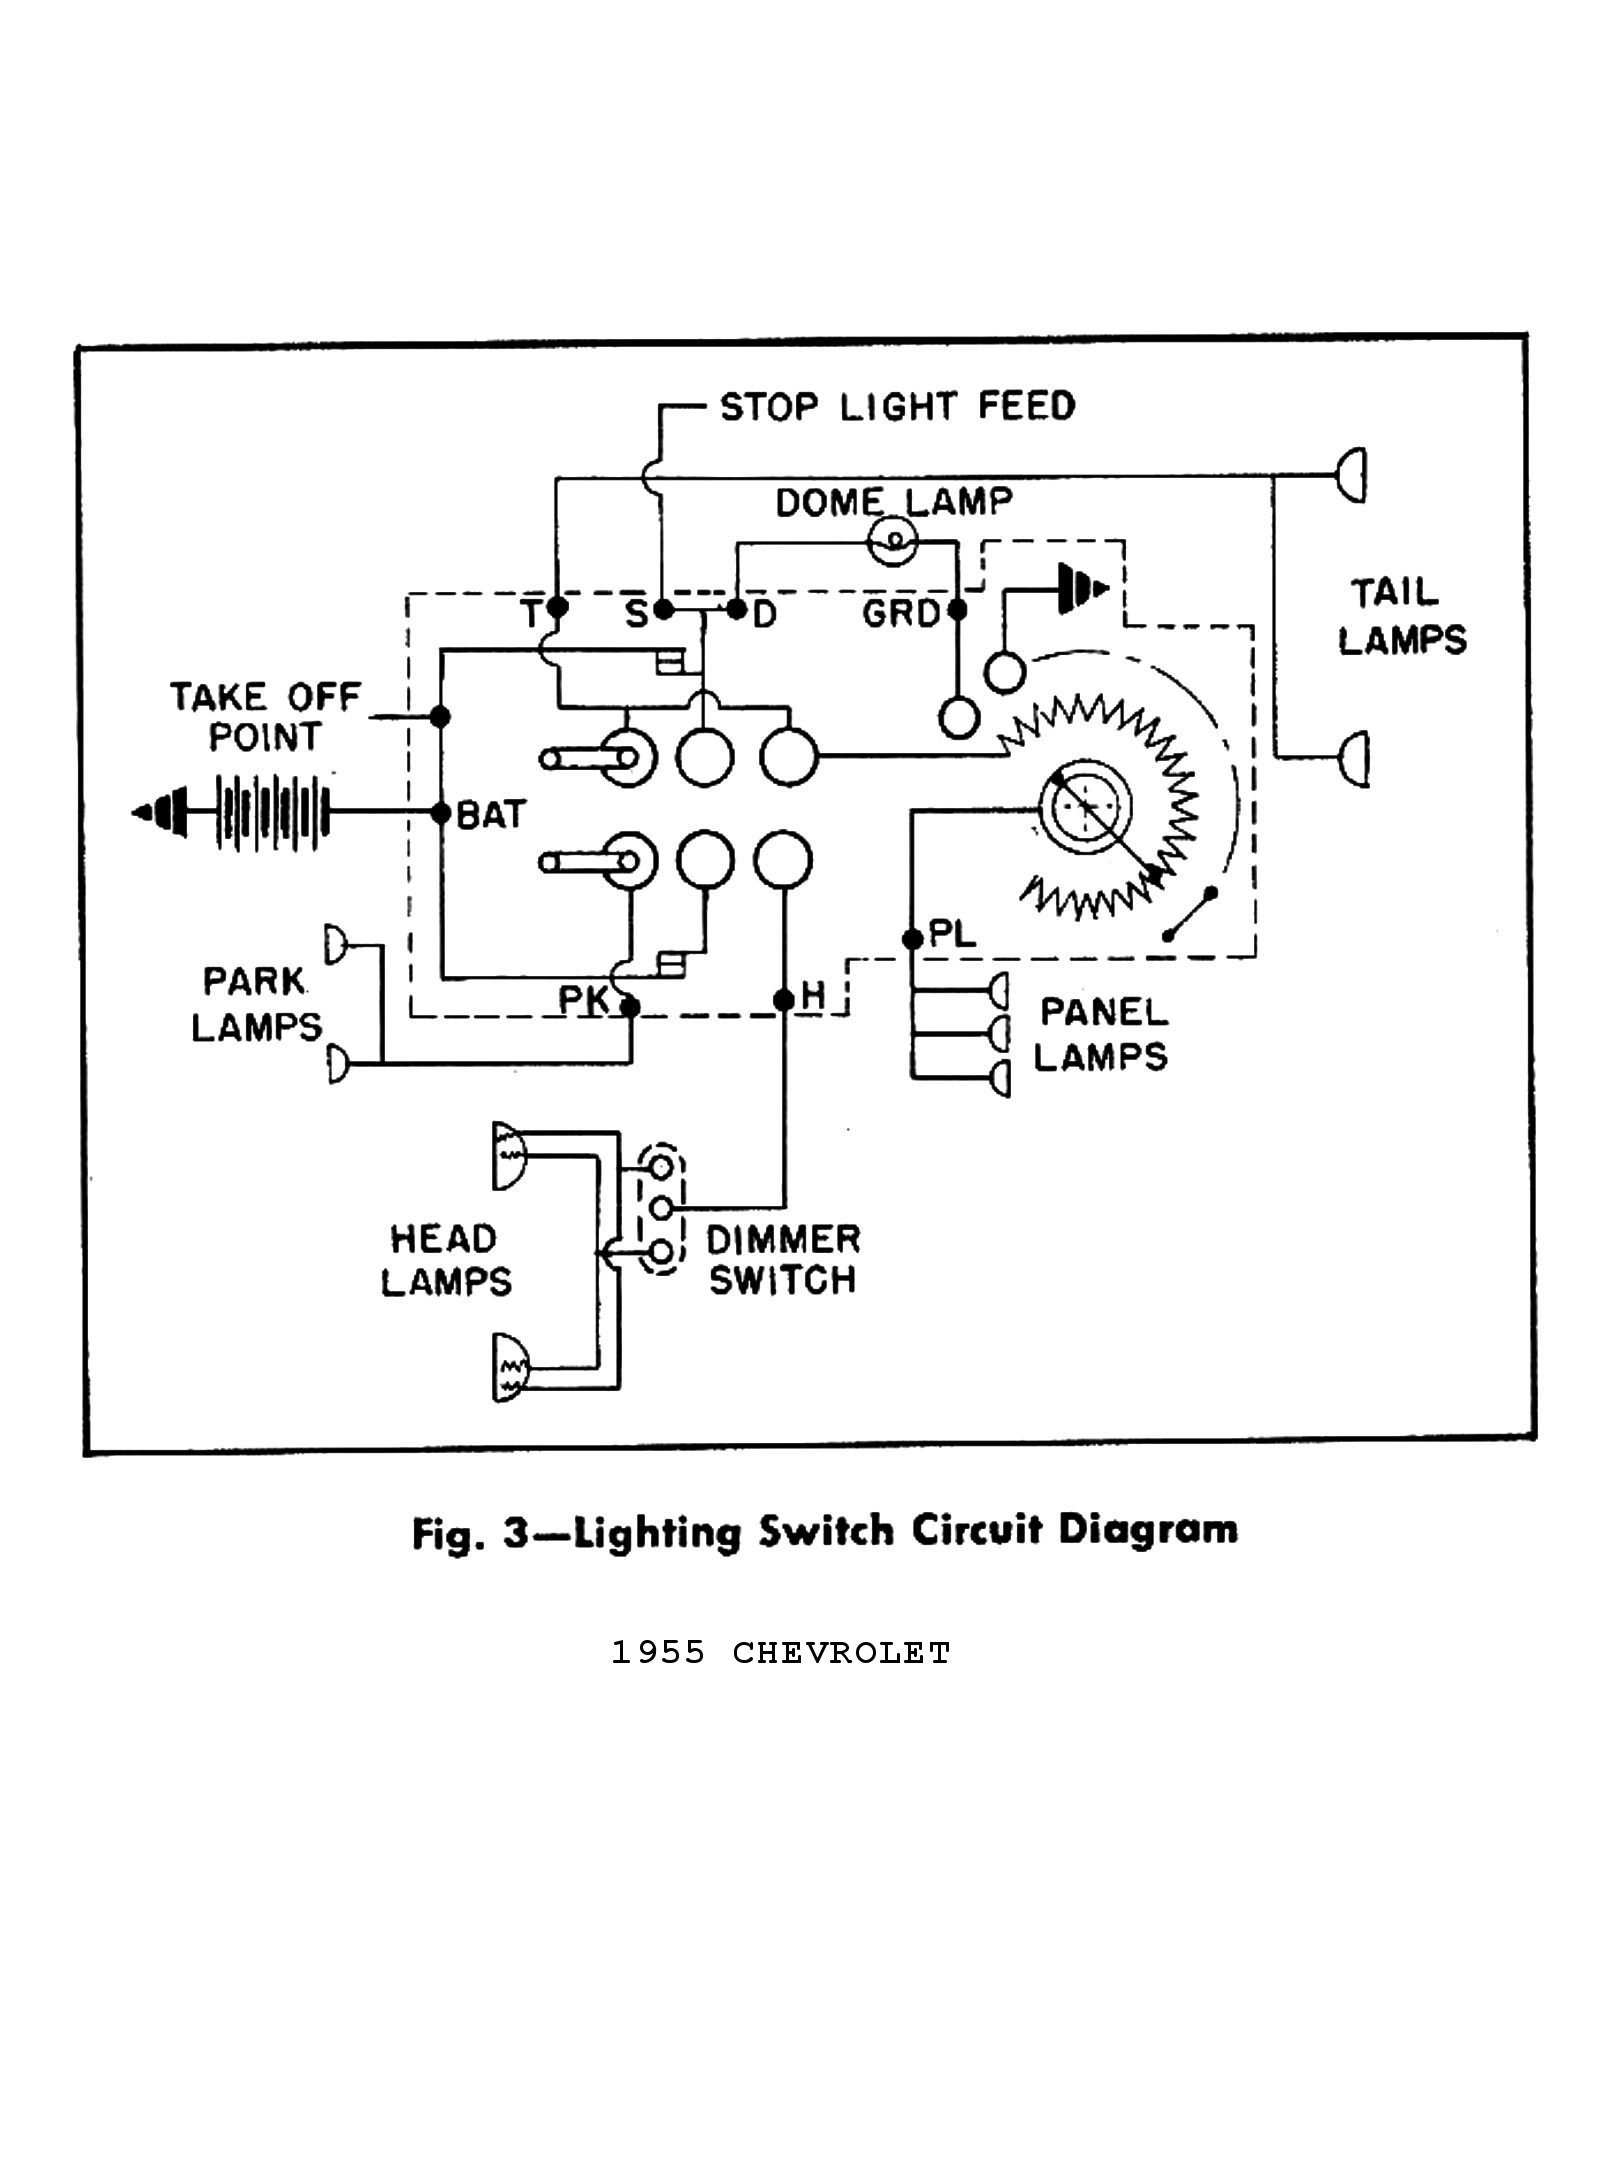 1951 Mercury Turn Signal Wiring Diagram Schematic Electronic 1968 Ford F100 54 Chevy Truck Electrical Diagrams Schematics Clutch